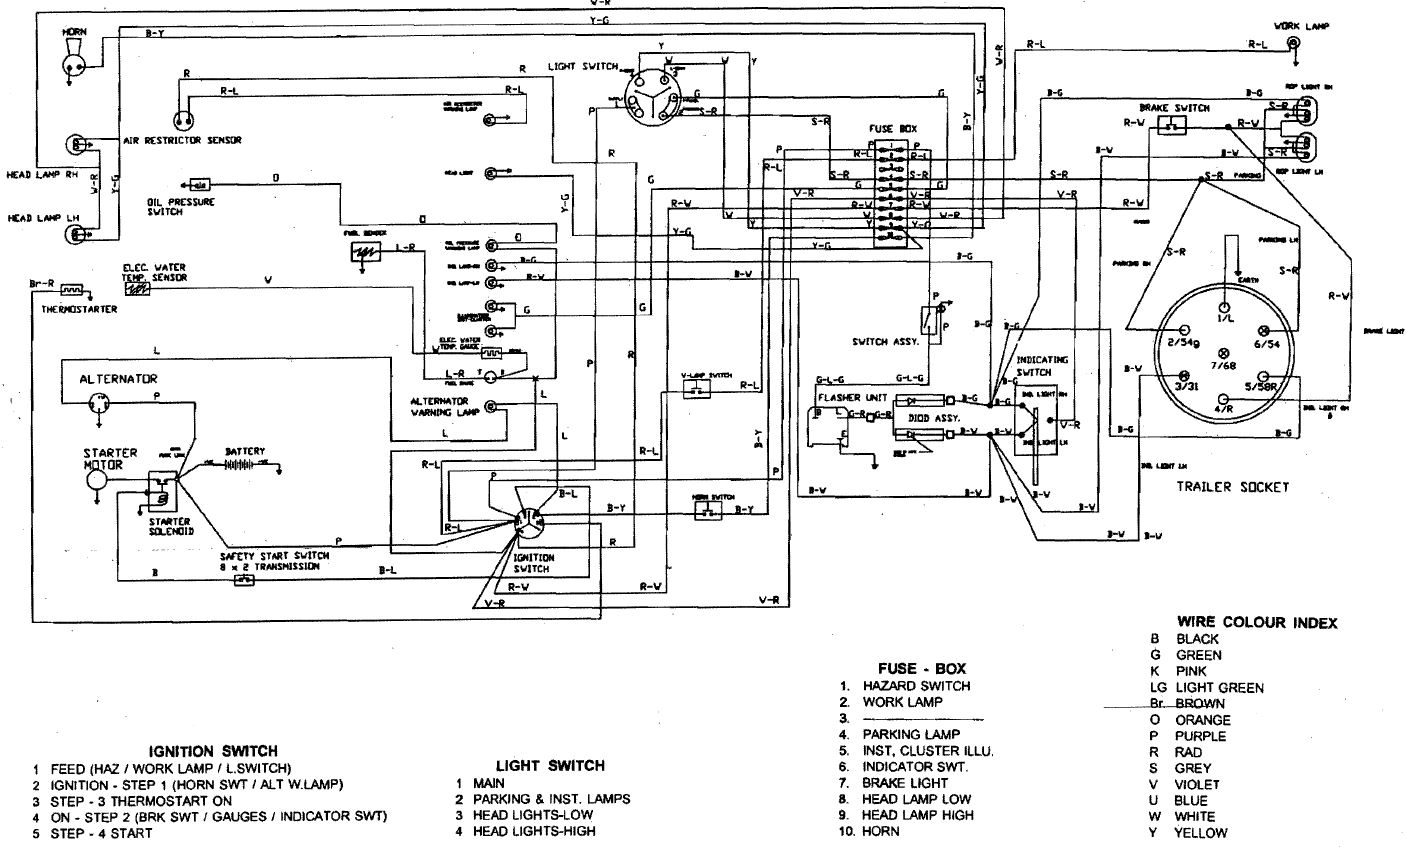 20158463319_b82d524c3d_o ignition switch wiring diagram  at edmiracle.co